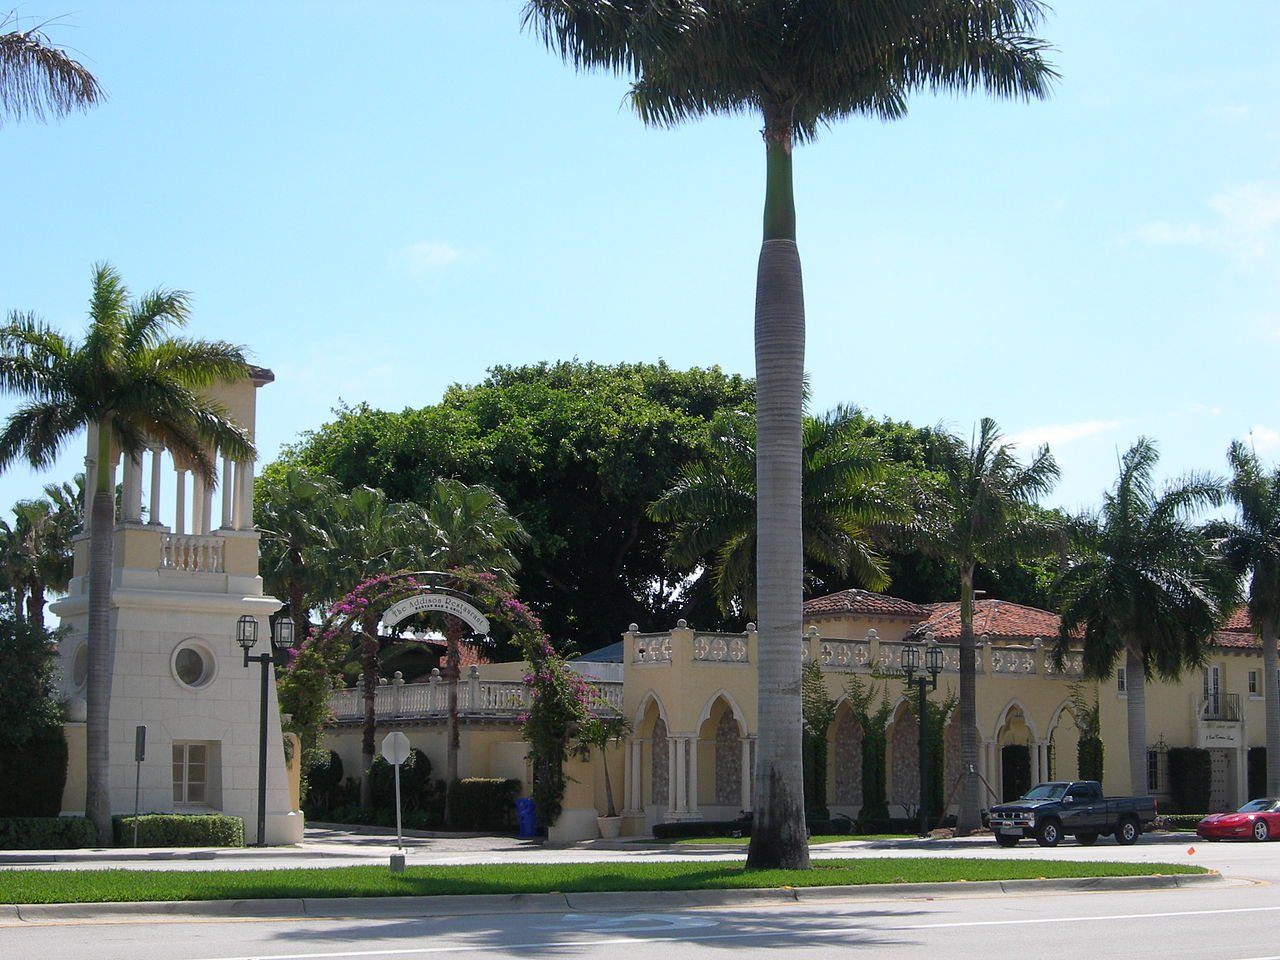 The Addison opened as a wedding and event venue in 2018 within two historic buildings designed by Addison Mizner.